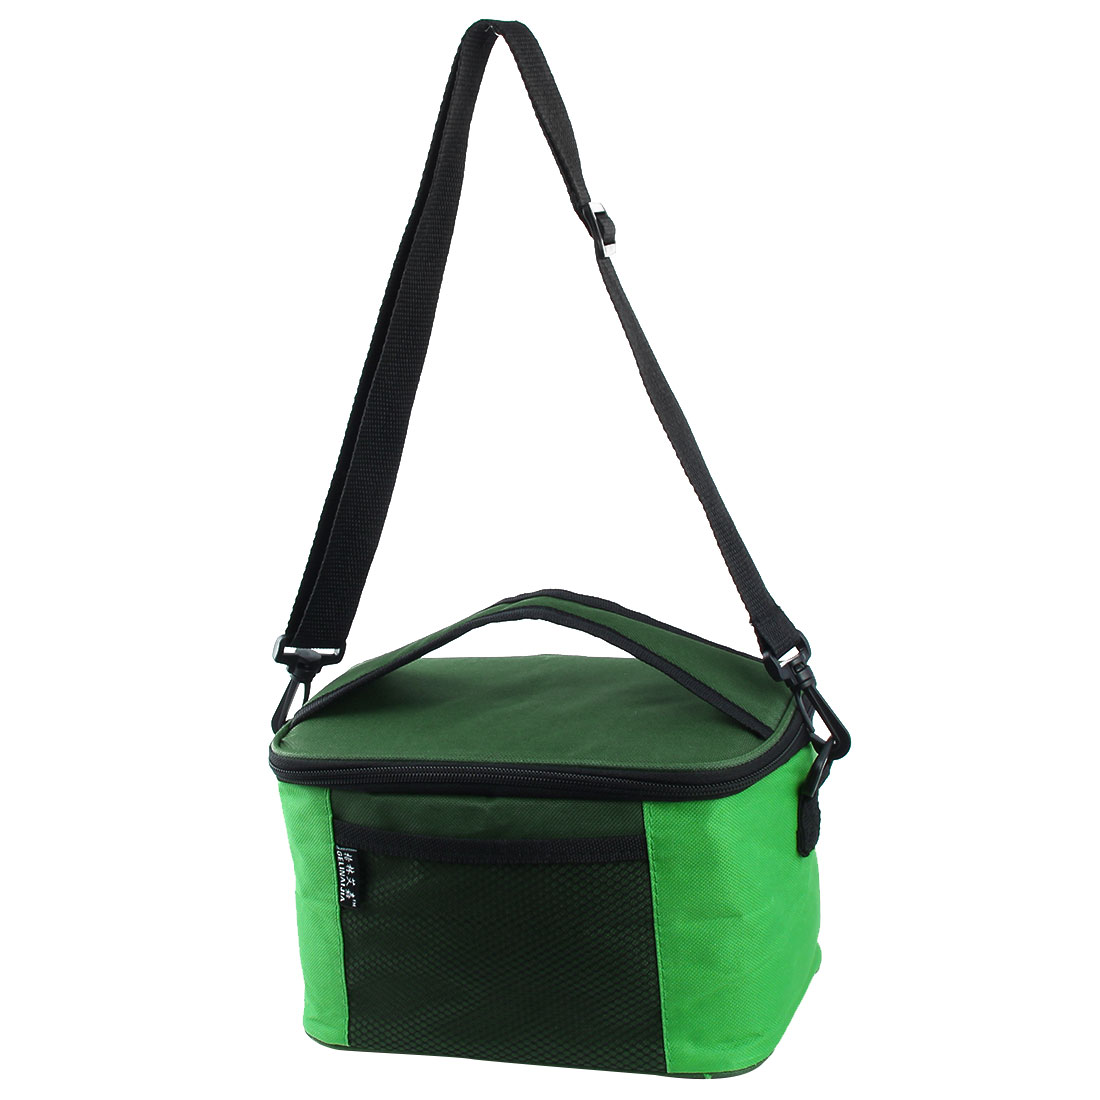 Travel Portable Insulated Thermal Picnic Cooler Box Carry Tote Bag Army Green